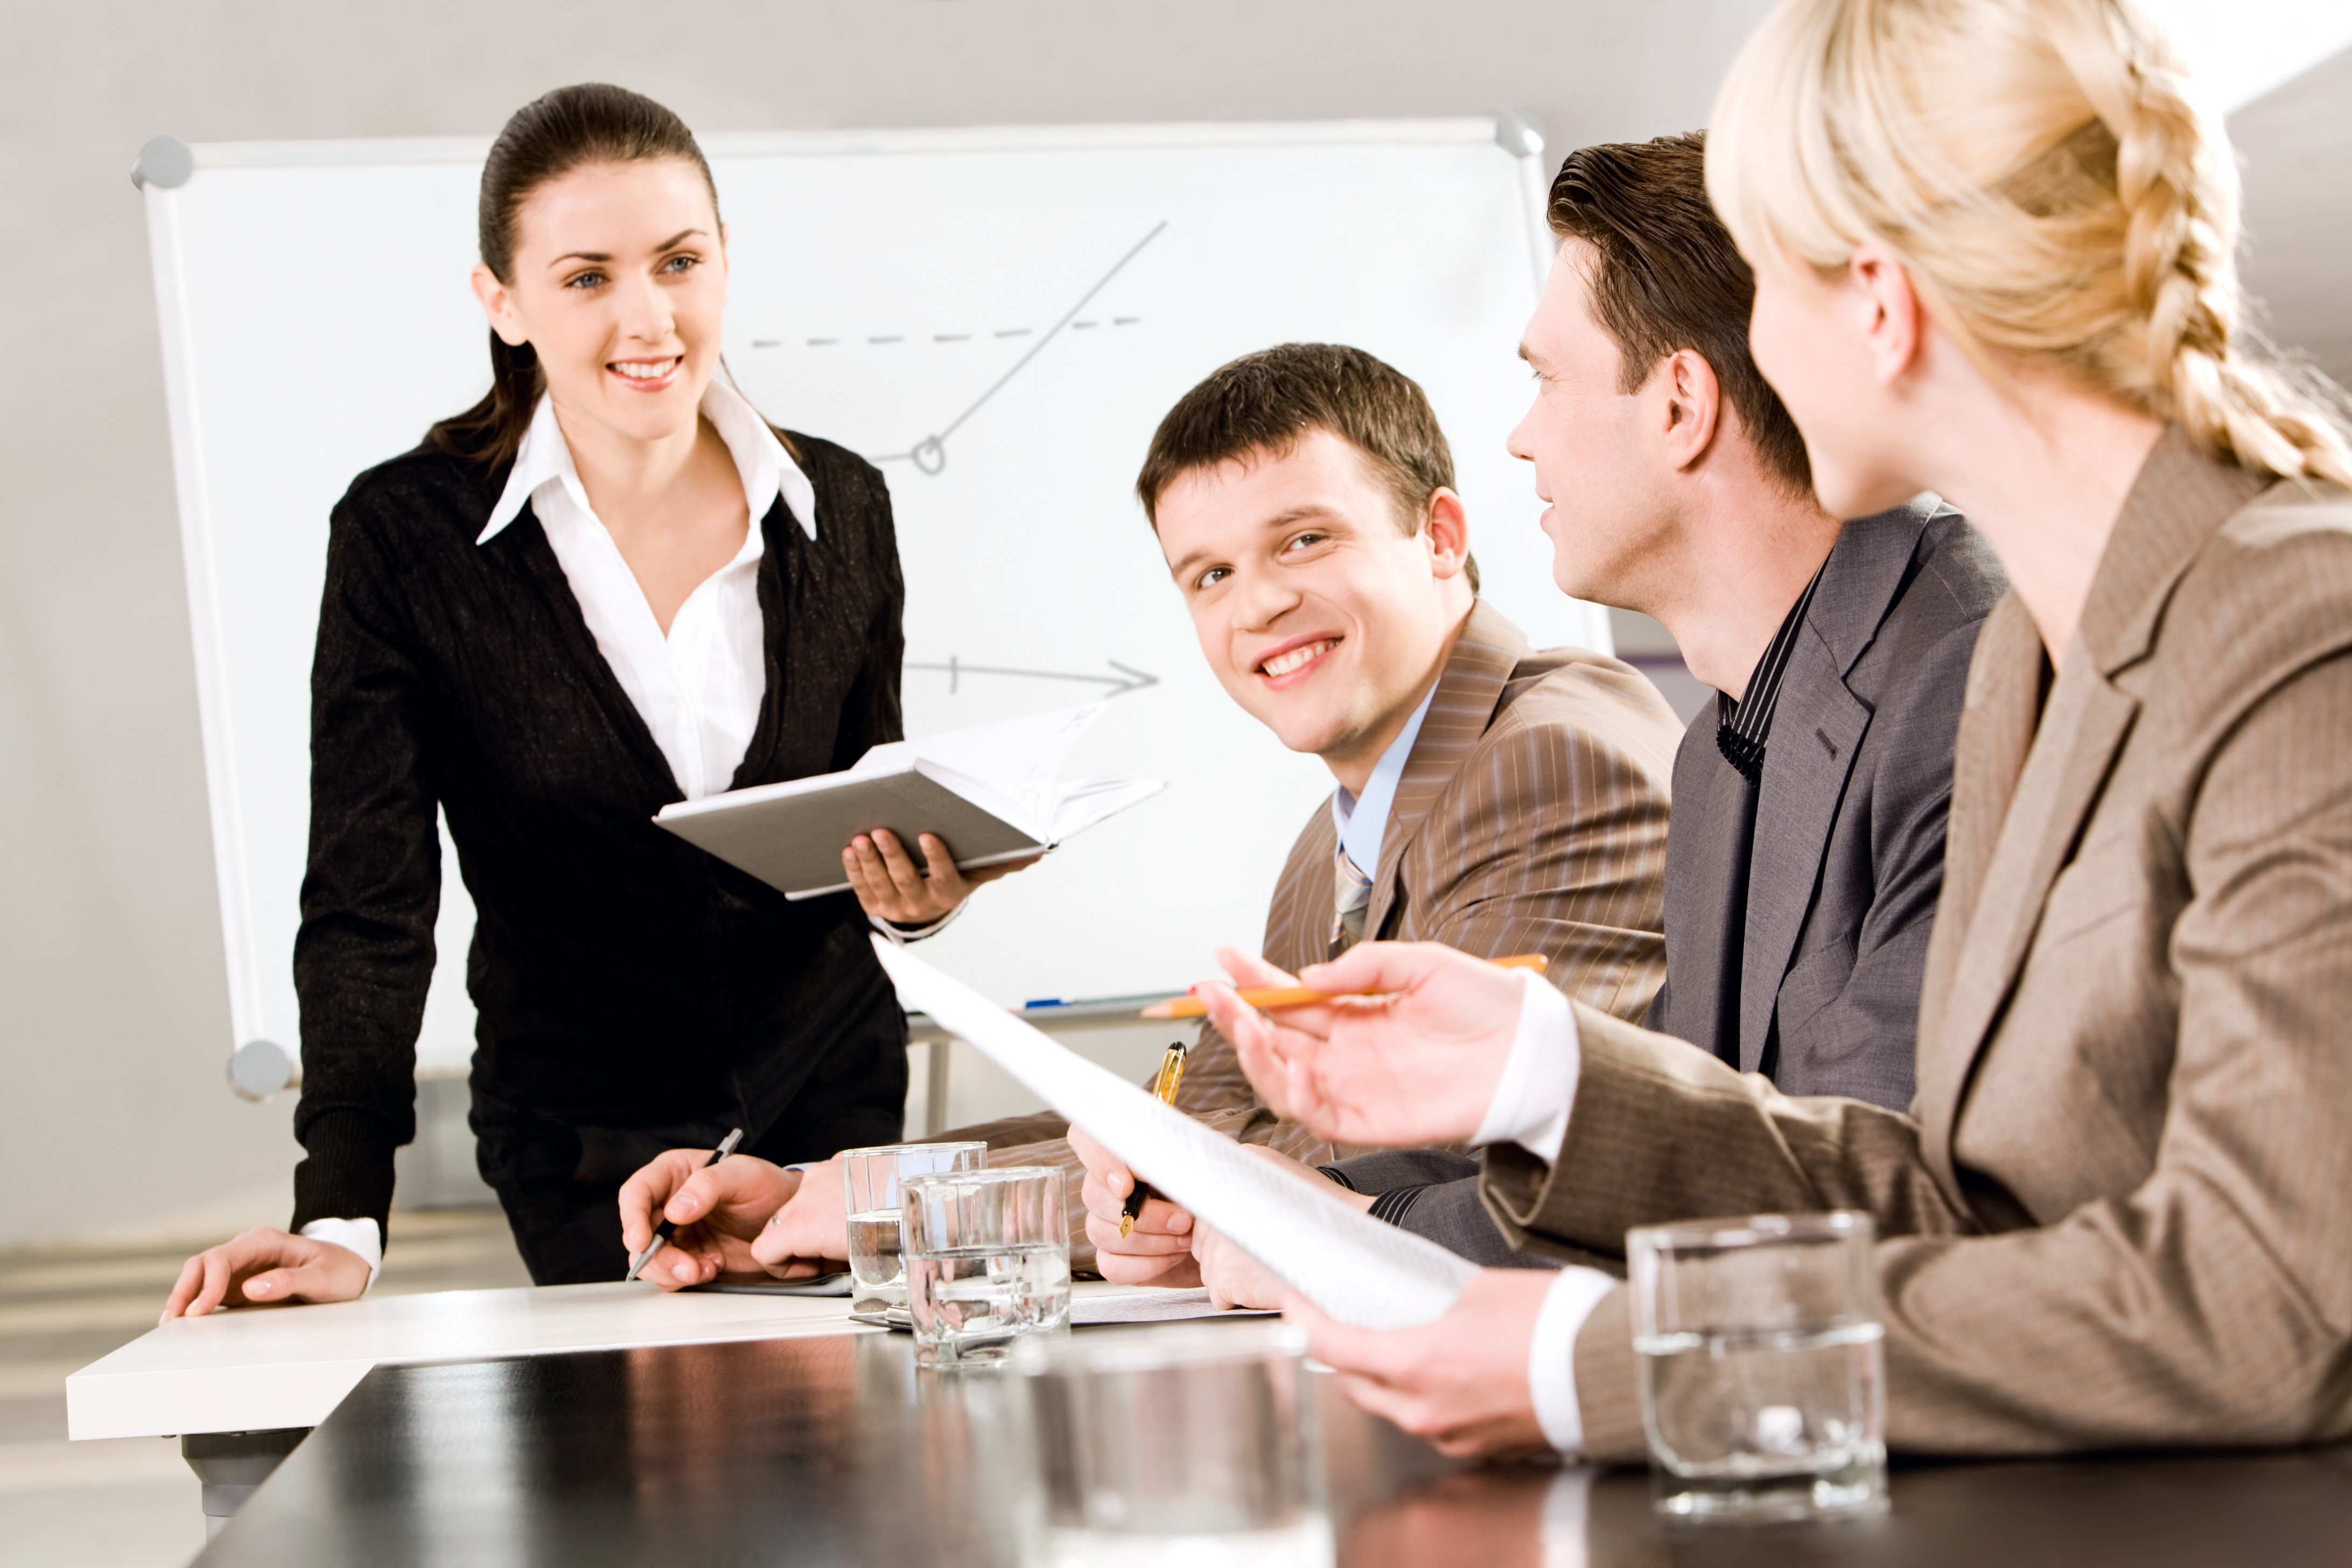 Colleagues interacting in a meeting